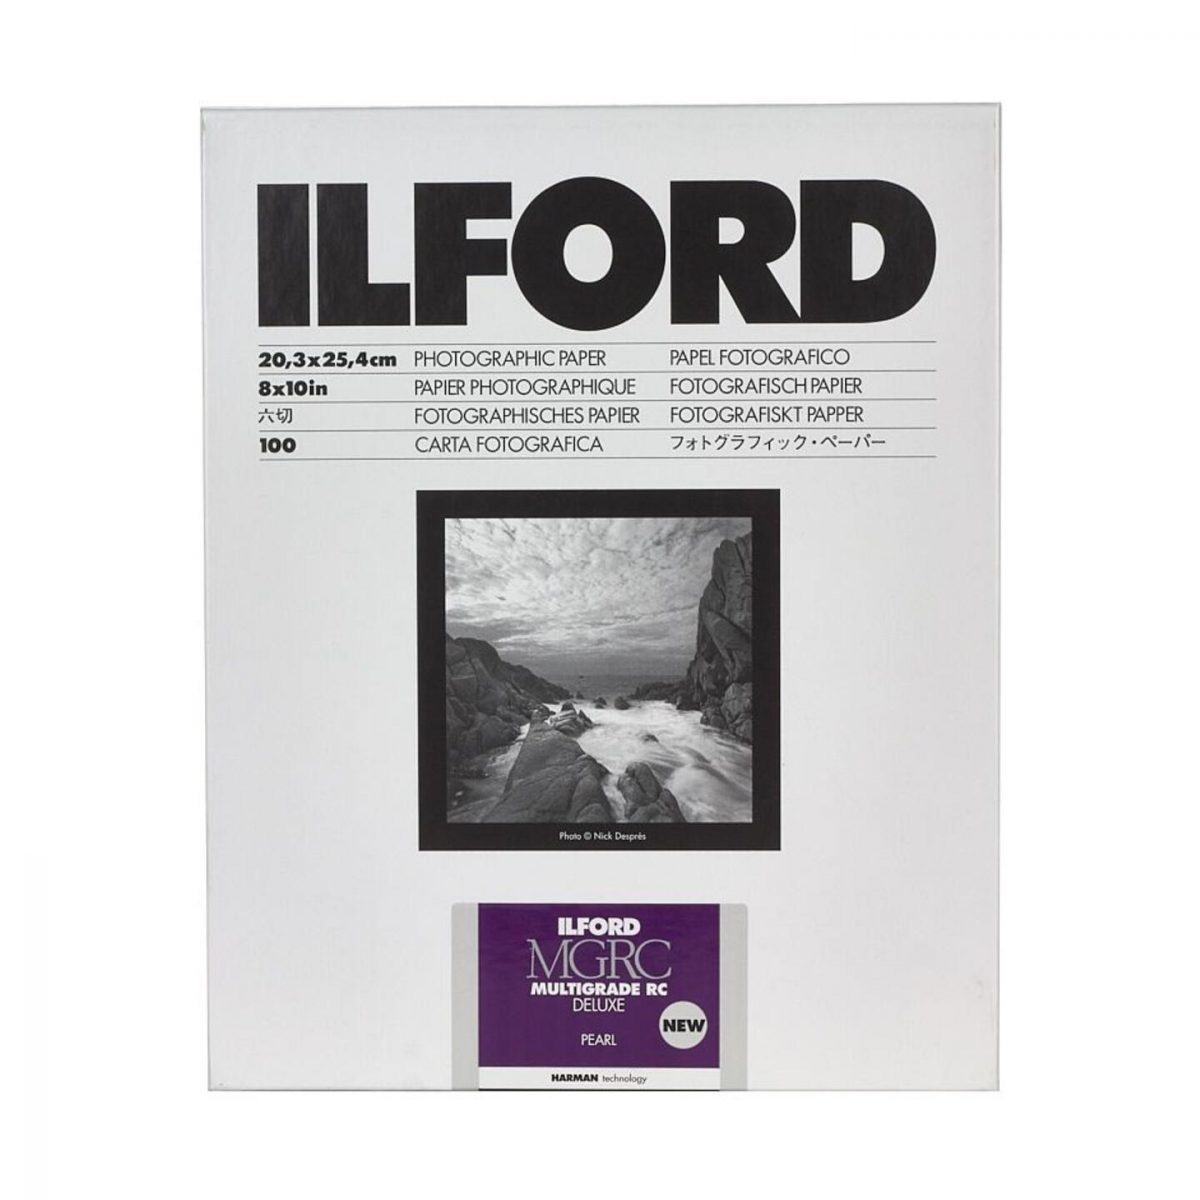 ilford_mg_rc_deluxe_pearl_01